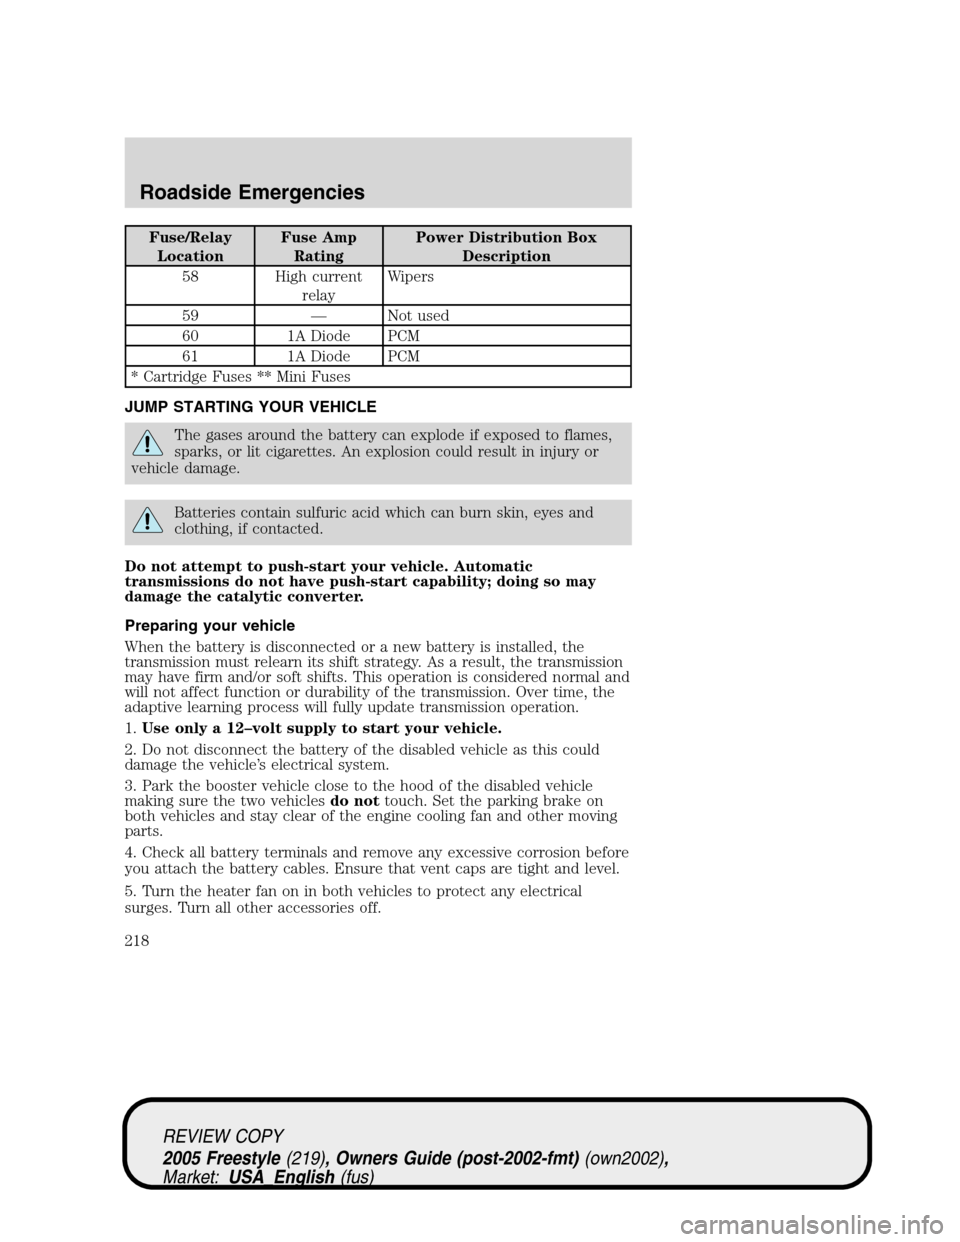 medium resolution of ford freestyle 2005 1 g owners manual page 218 fuse relay